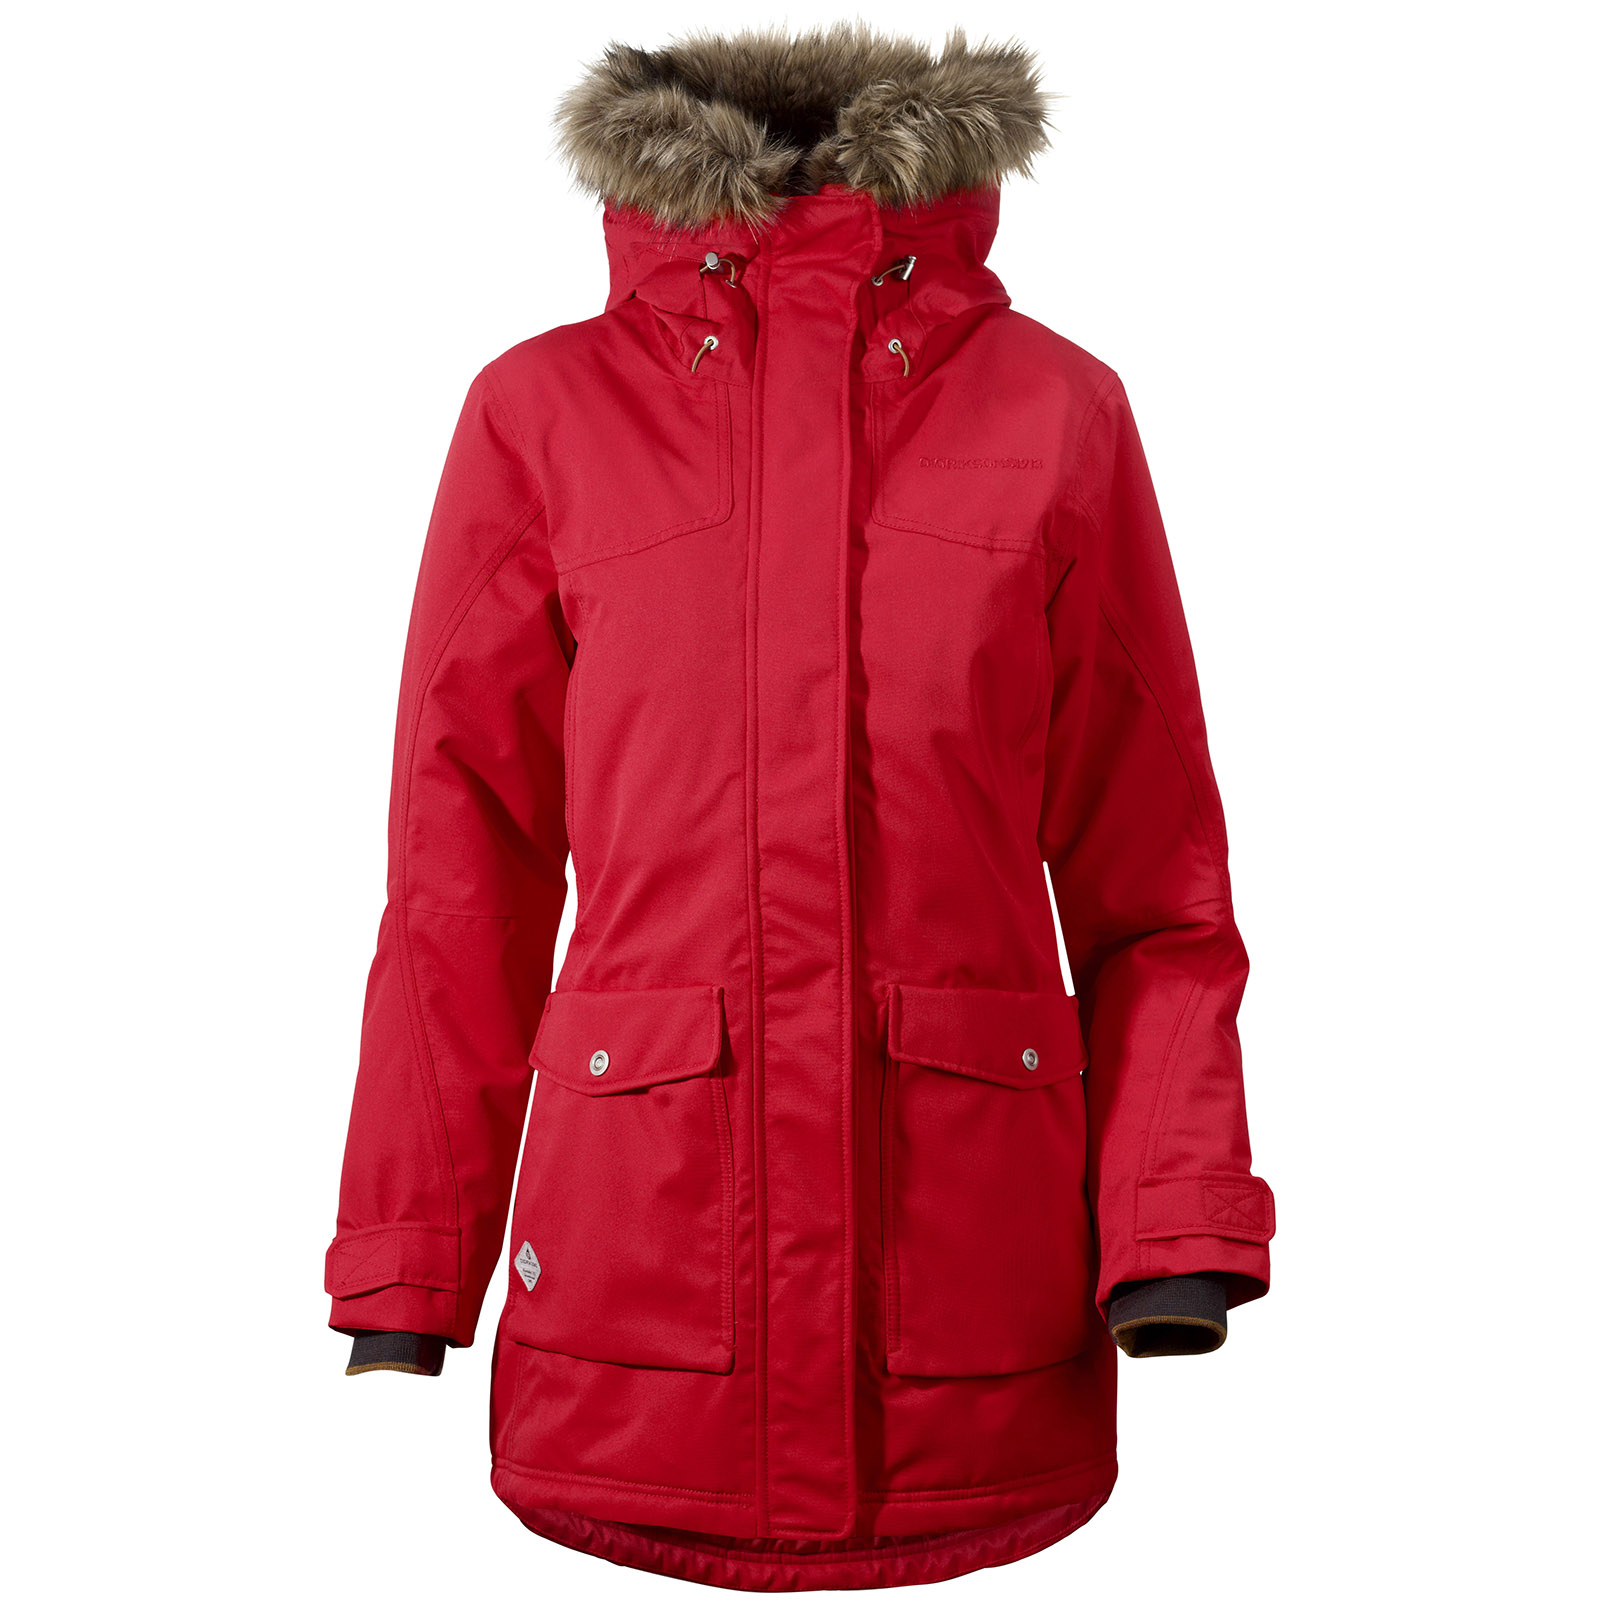 Ladies Red Parka Jacket | Fit Jacket